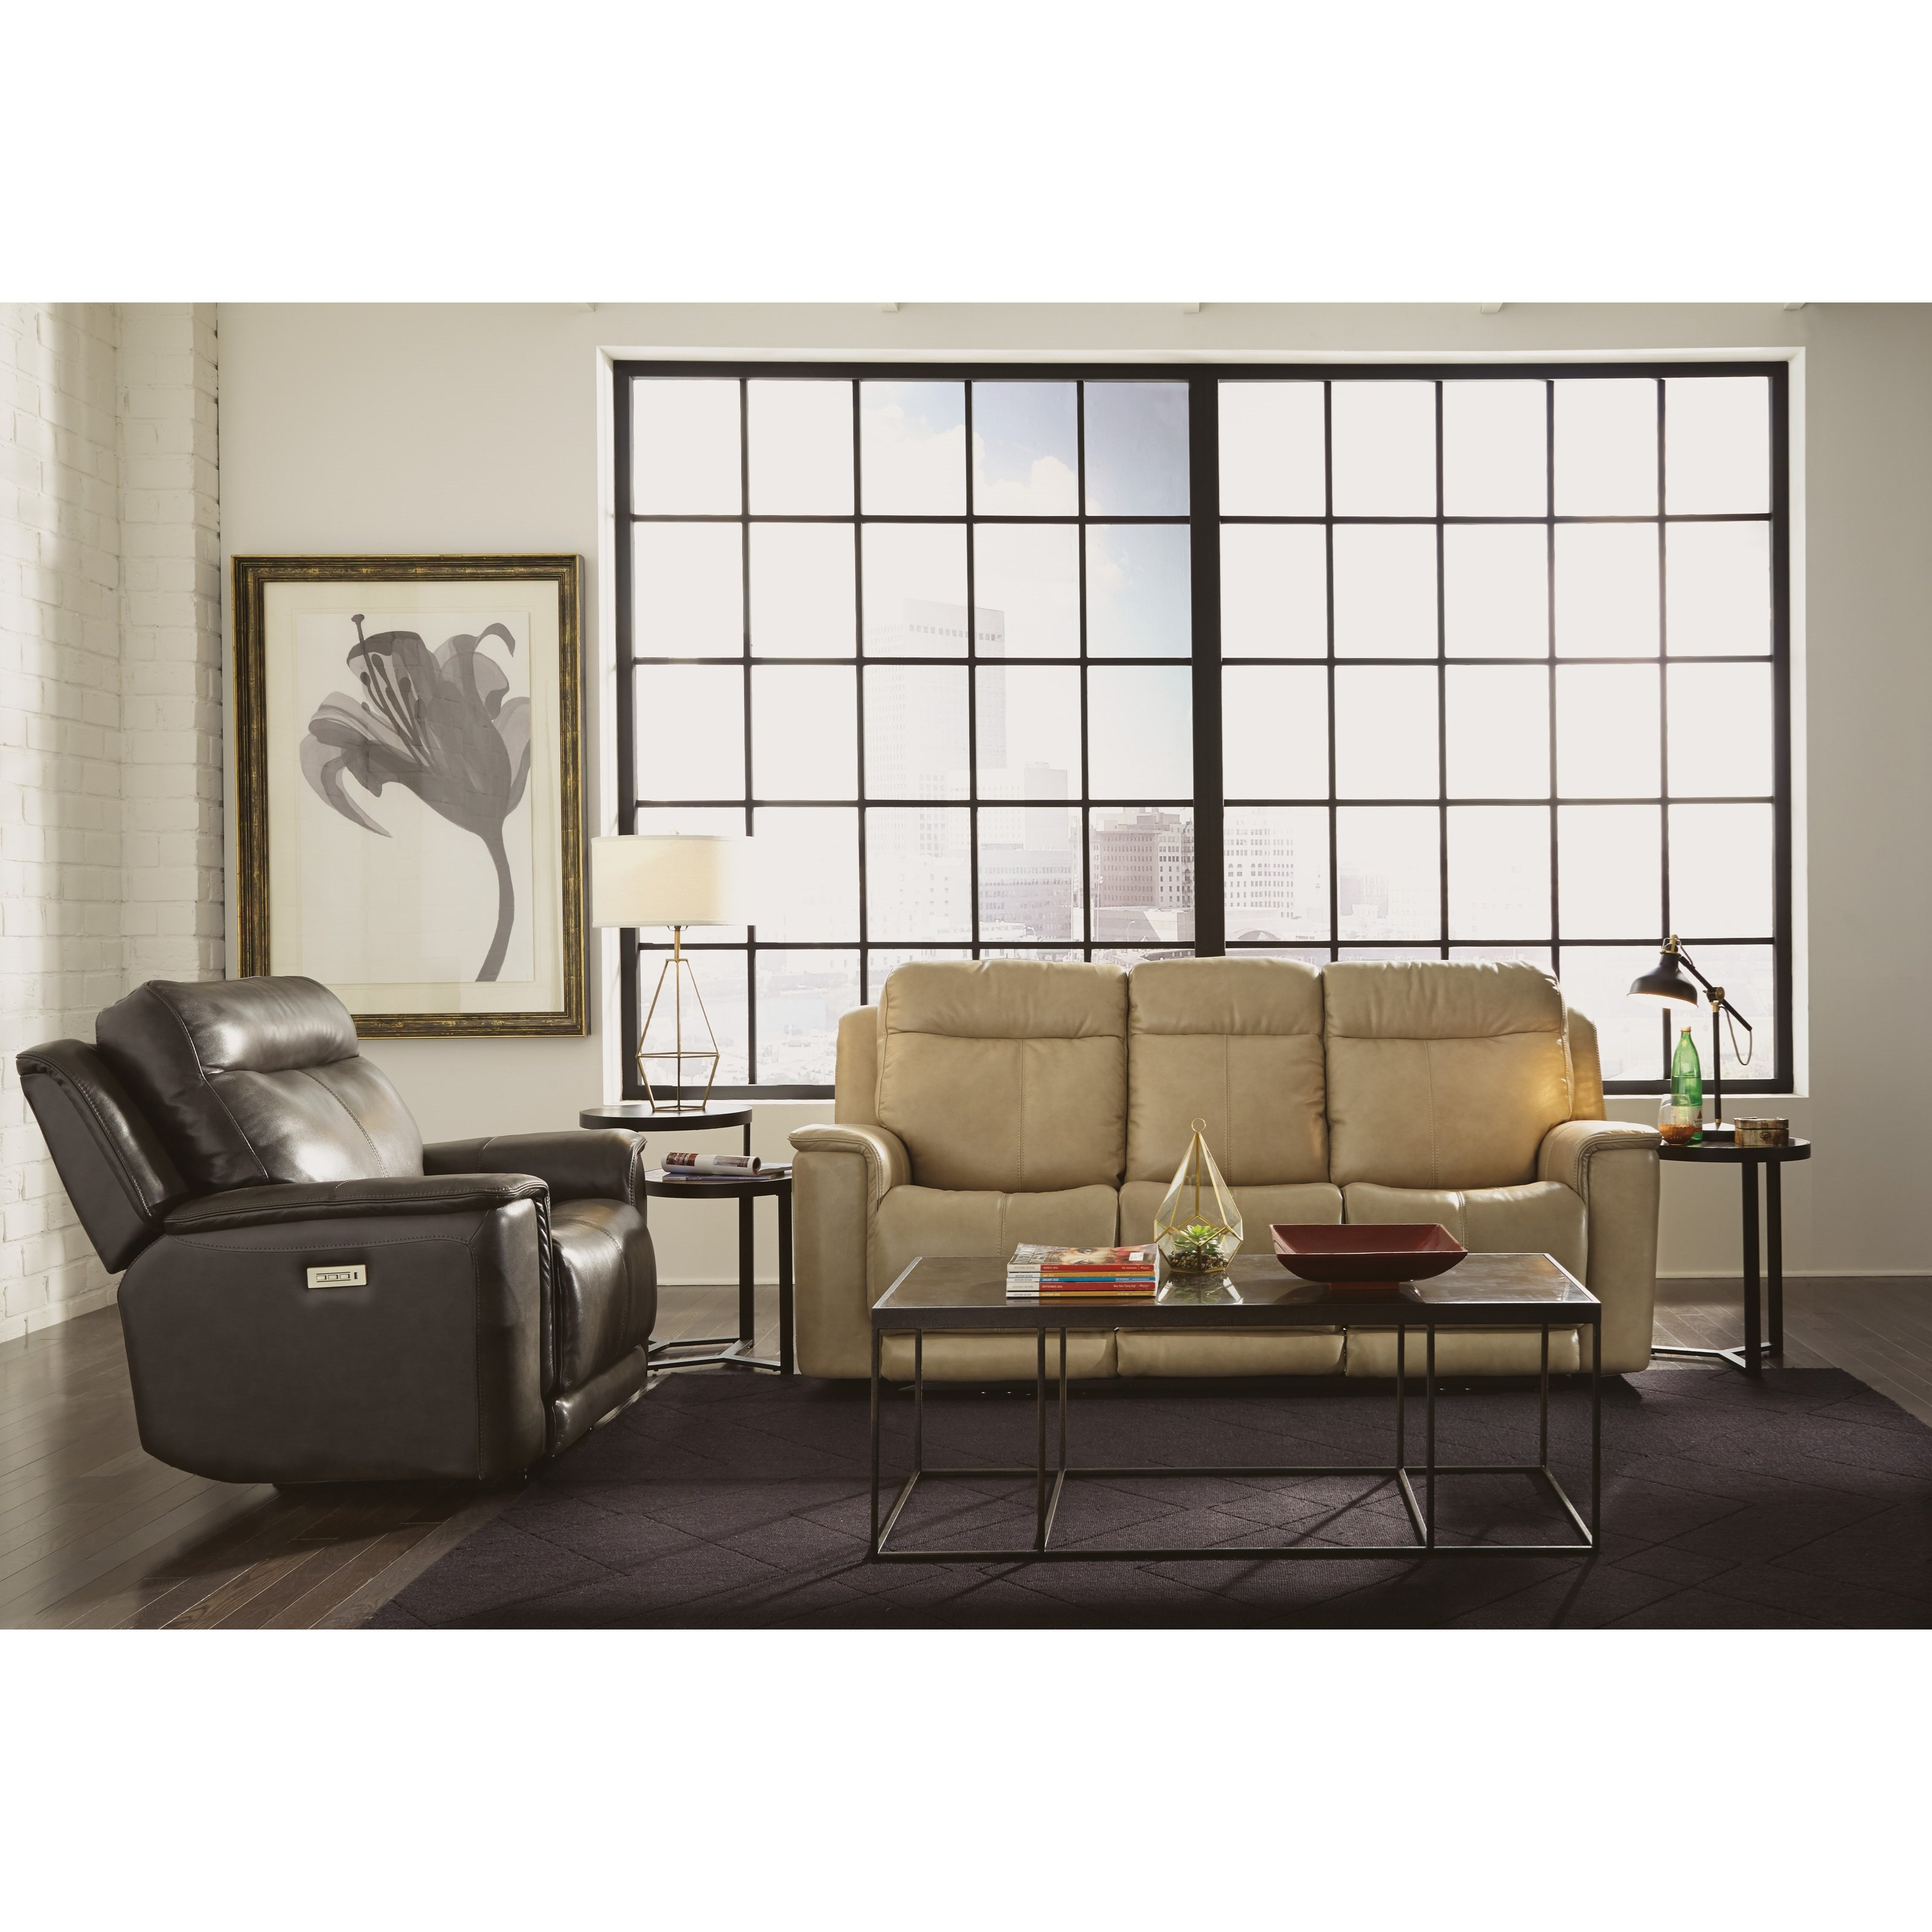 Clay Living Room Group Flexsteel Clay by Flexsteel at Crowley Furniture & Mattress